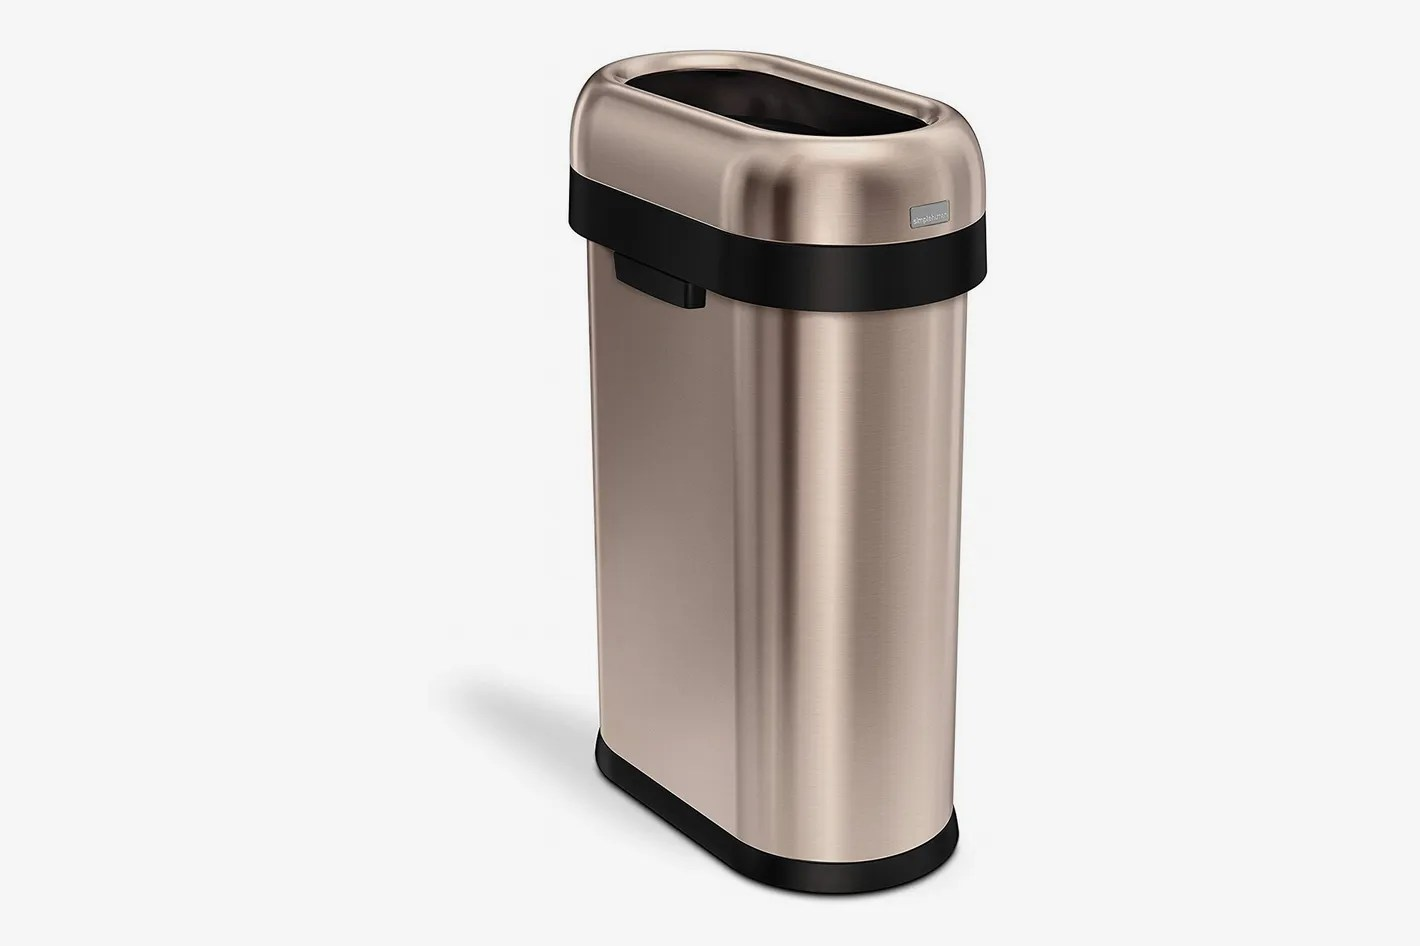 Cool Trash Bins Simplehuman Slim Open Top Trash Can Commercial Grade Heavy Gauge Stainless Steel